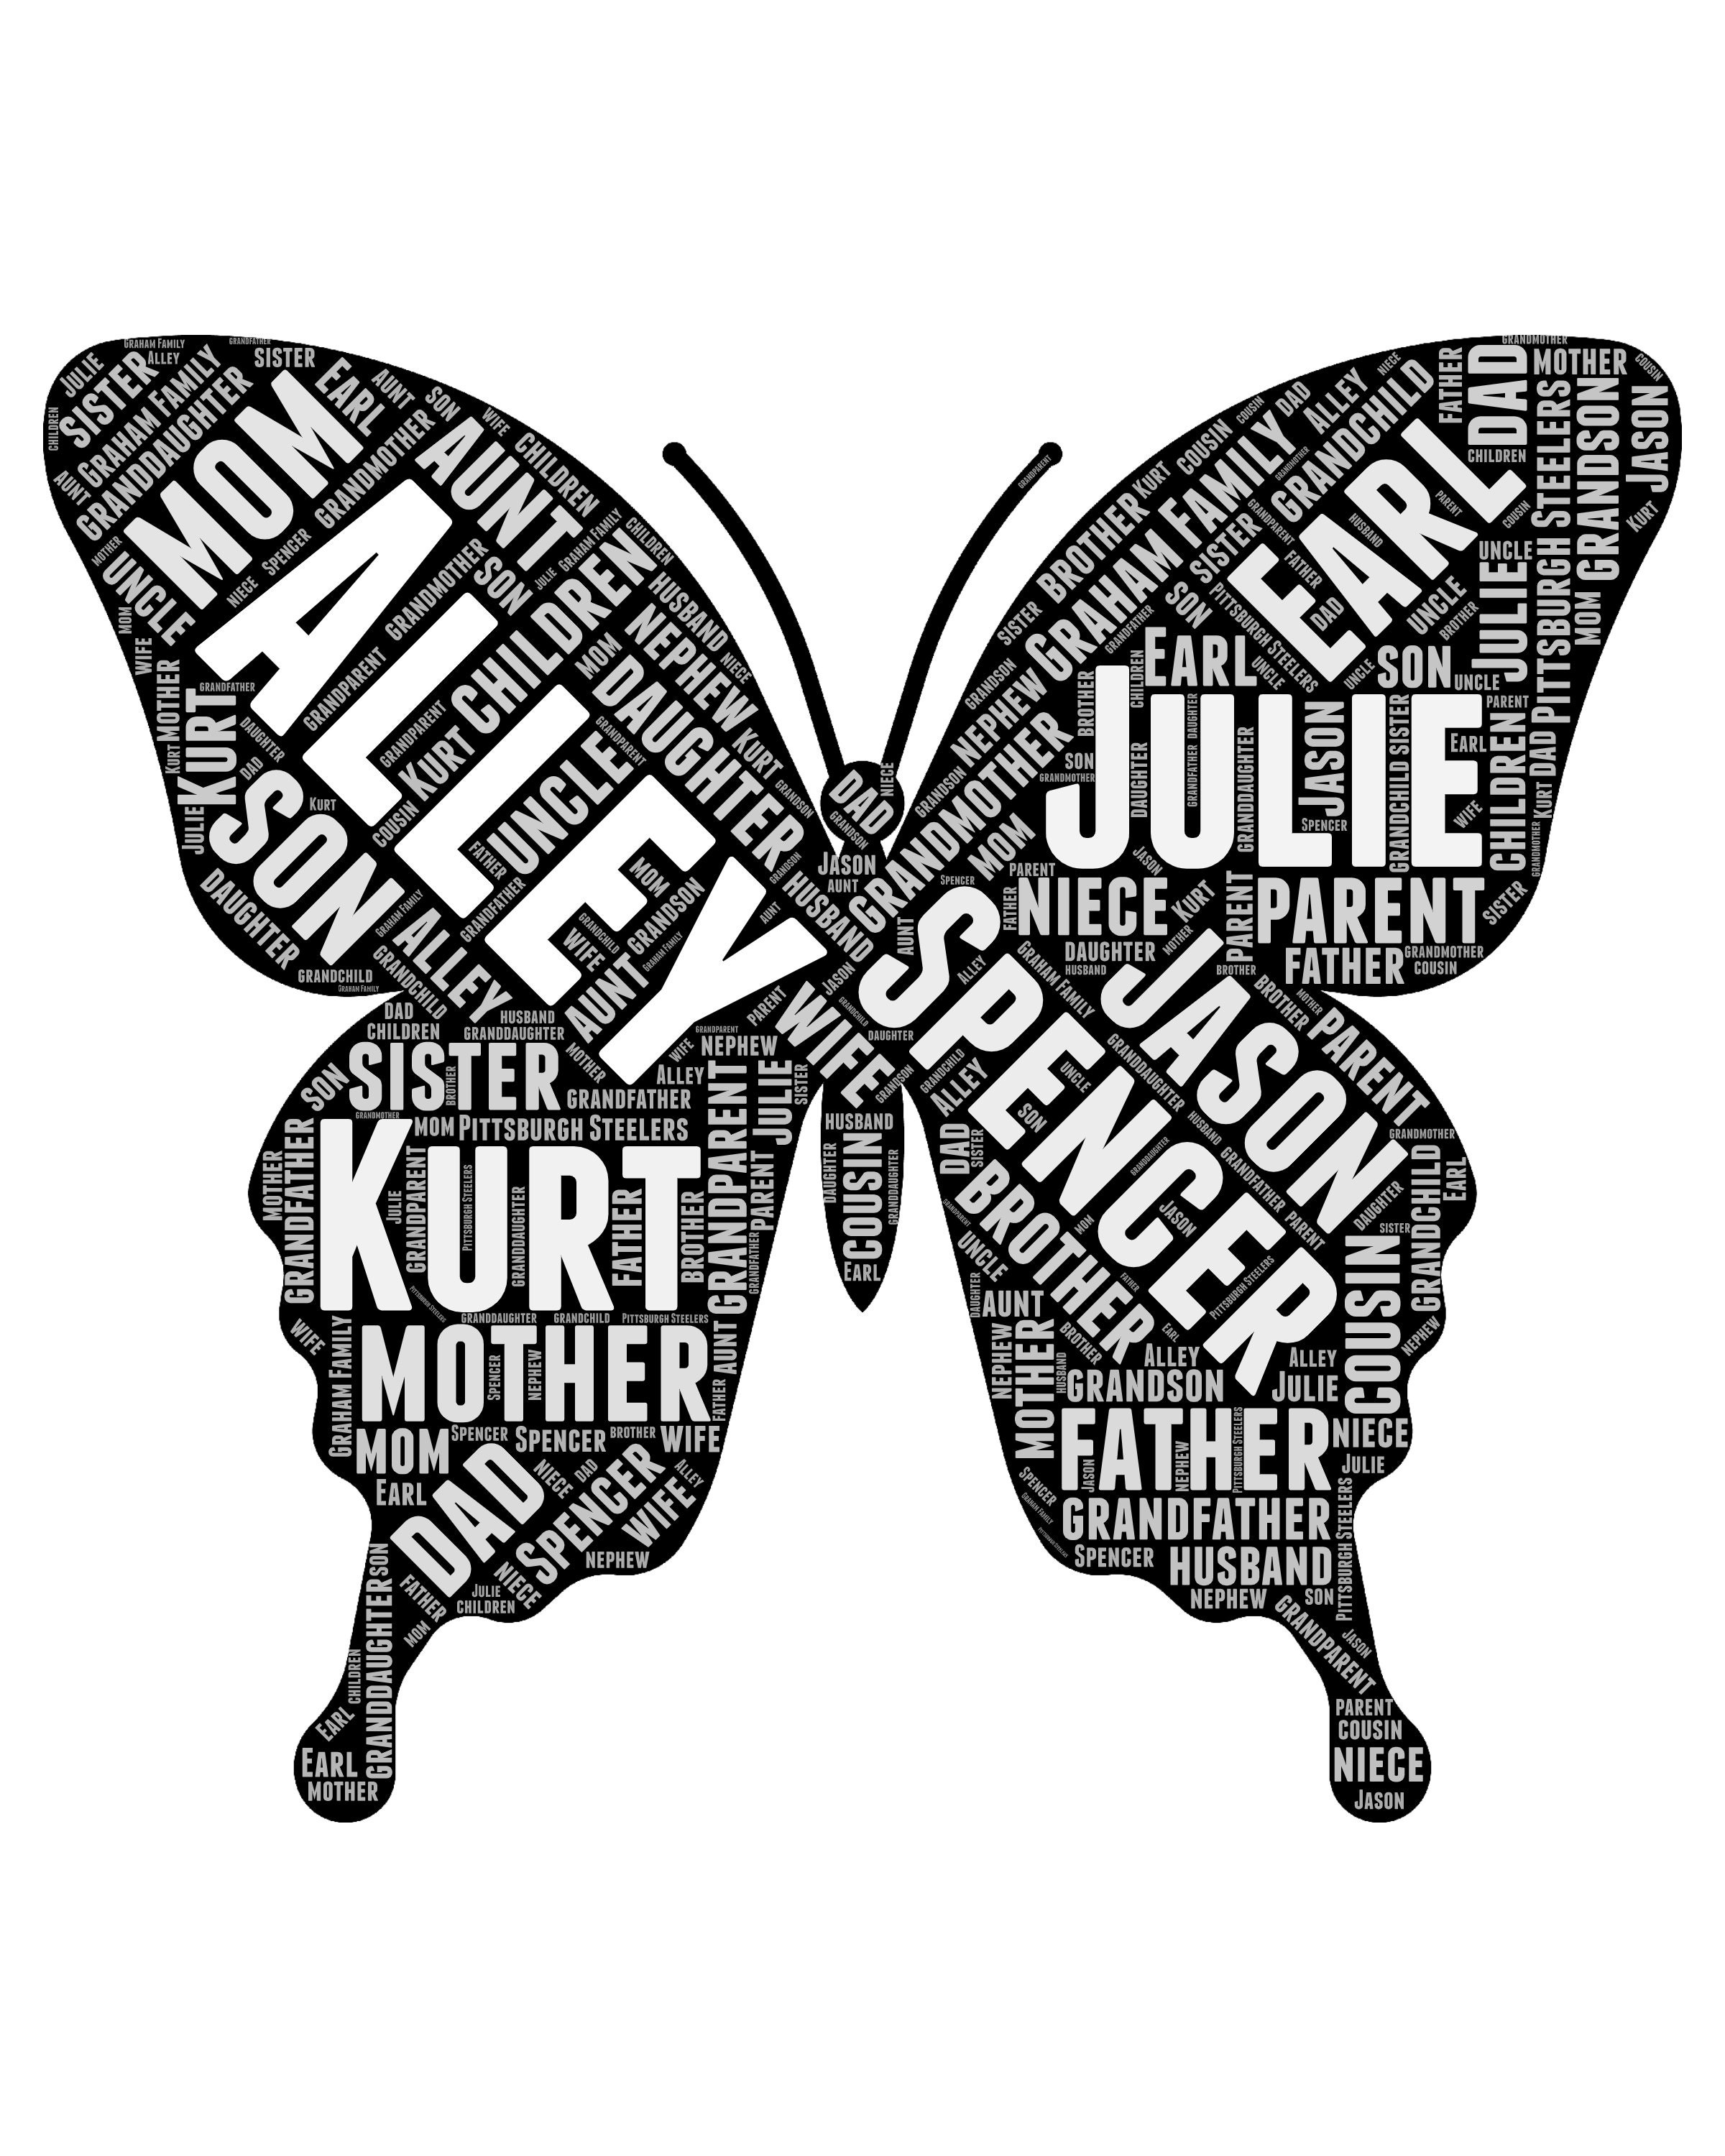 Personalized Butterfly Gift -Word Art Wall Room Decor Prints - Butterfly Wall Art - Gift for Butterfly Lover - Christmas Gift